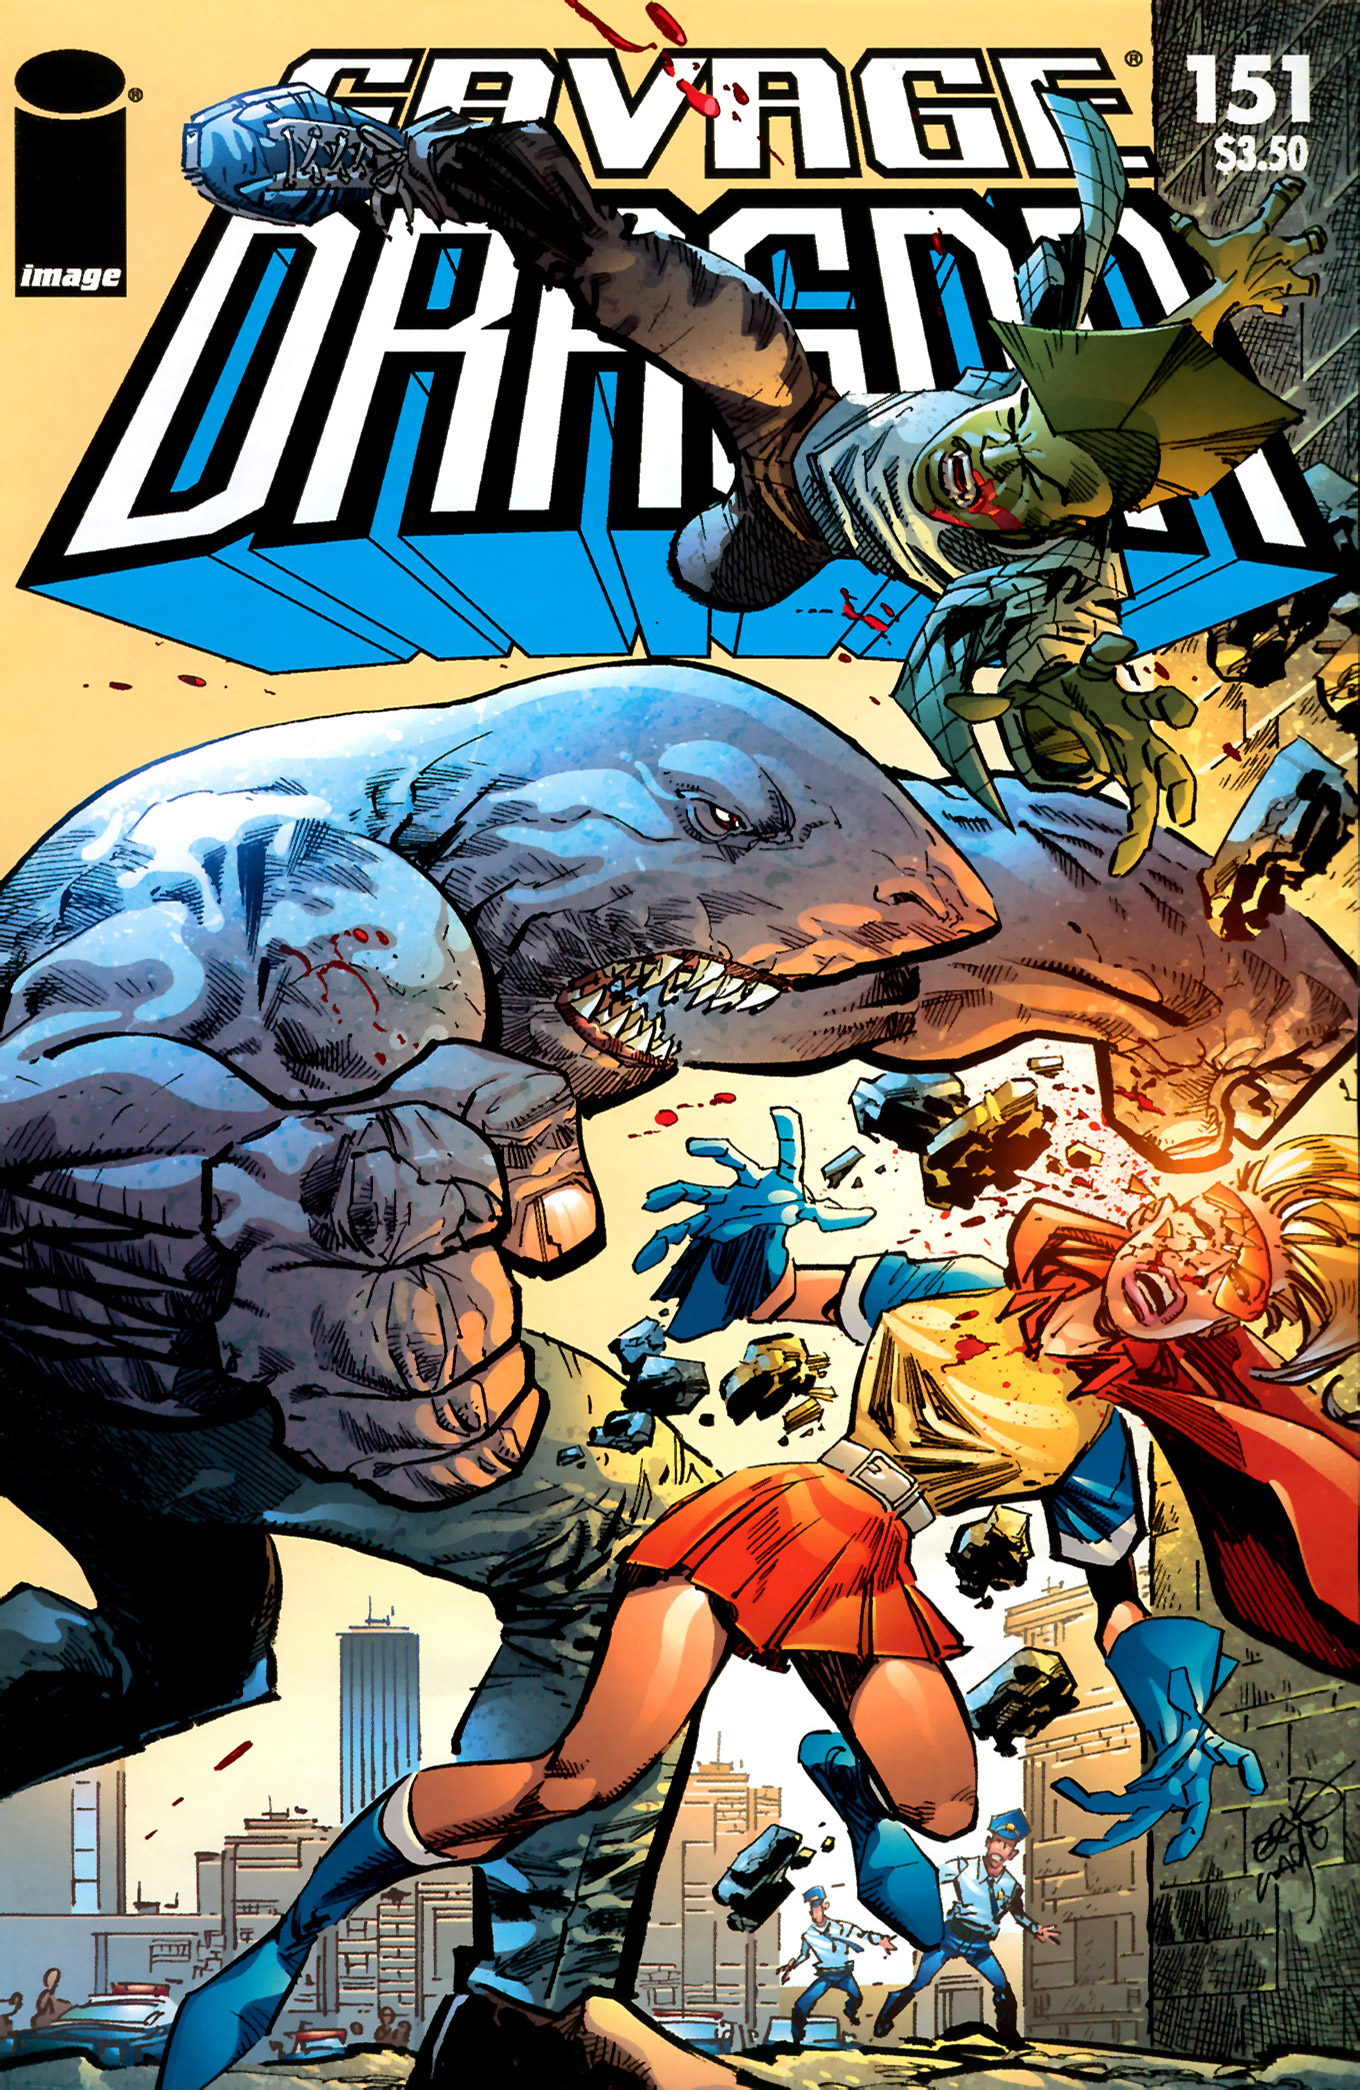 Cover Savage Dragon Vol.2 #151